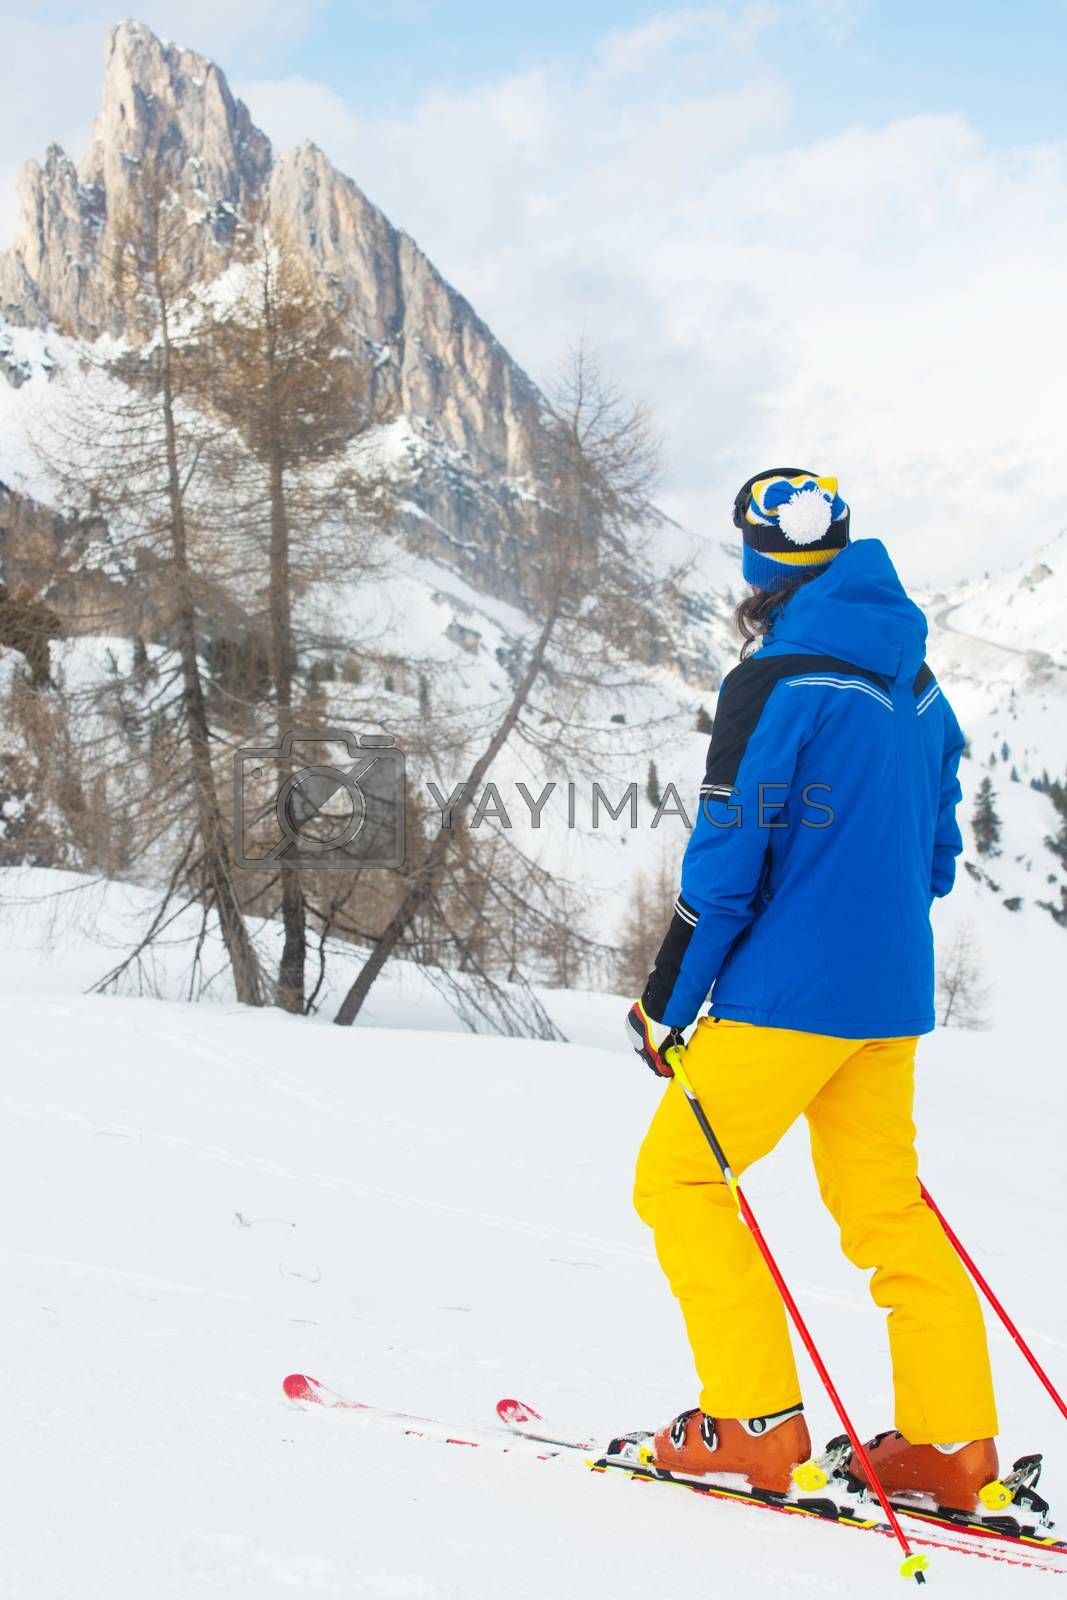 Skier with looking at mountain landscape Col Gallina Cortina d'Ampezzo Dolomites